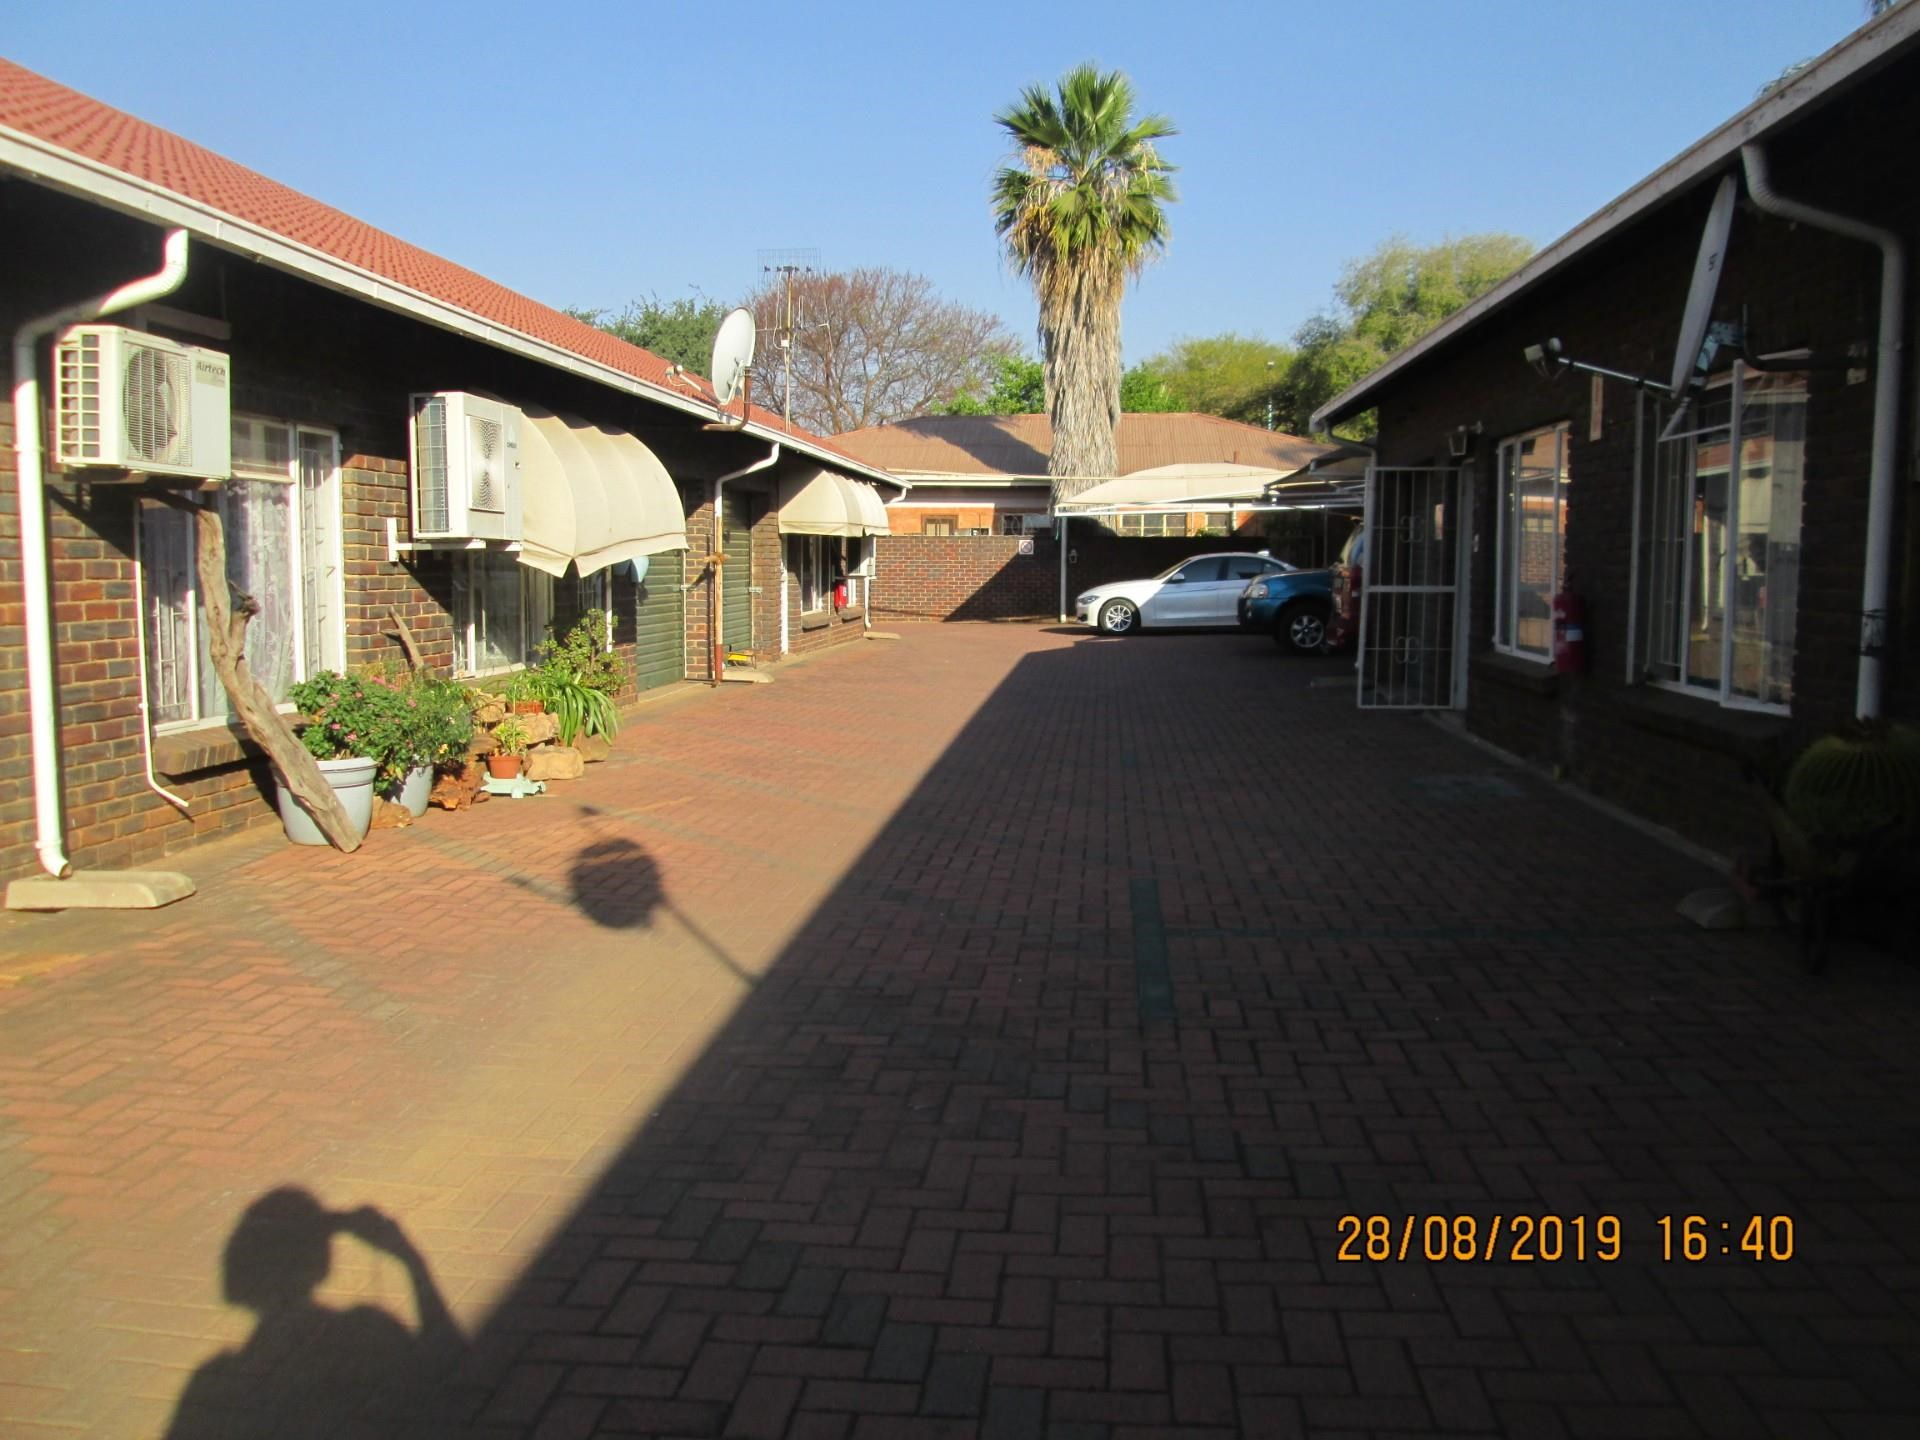 2 Bedroom Simplex to Rent in Rustenburg Central